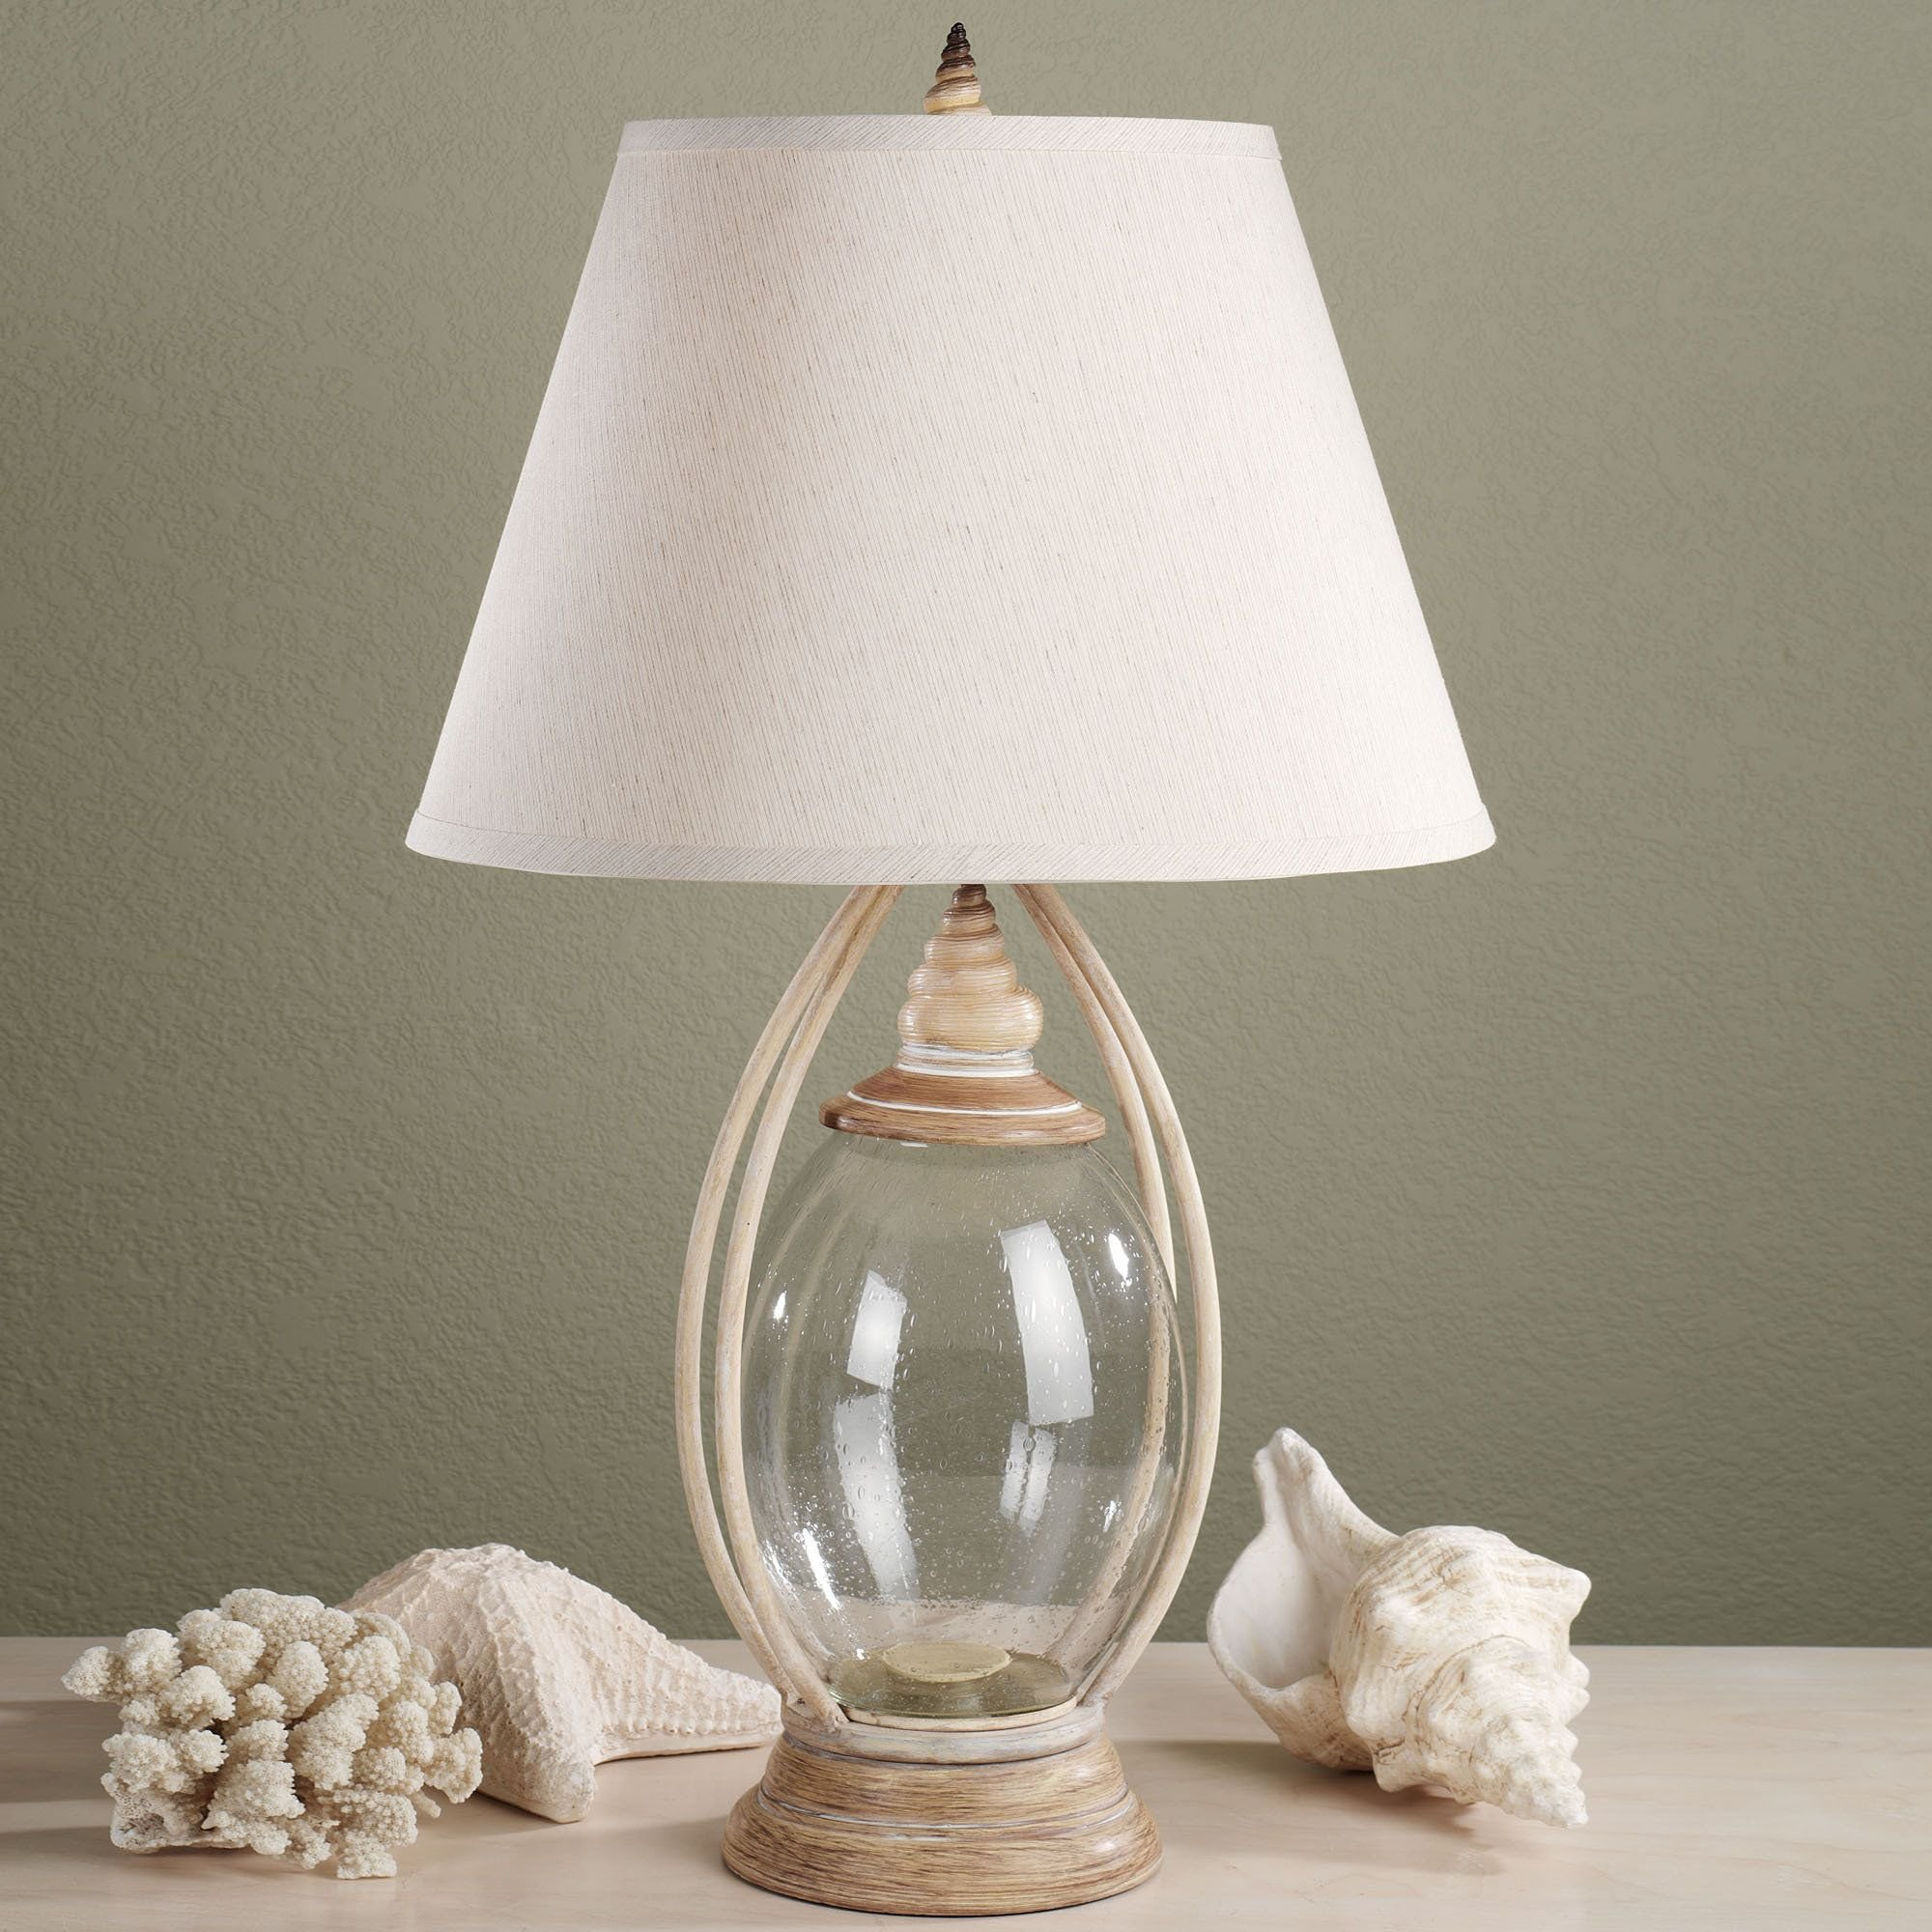 Best Sea Treasures Fillable Glass Table Lamp All I Need Is The Beach House Table Lamps For With Pictures